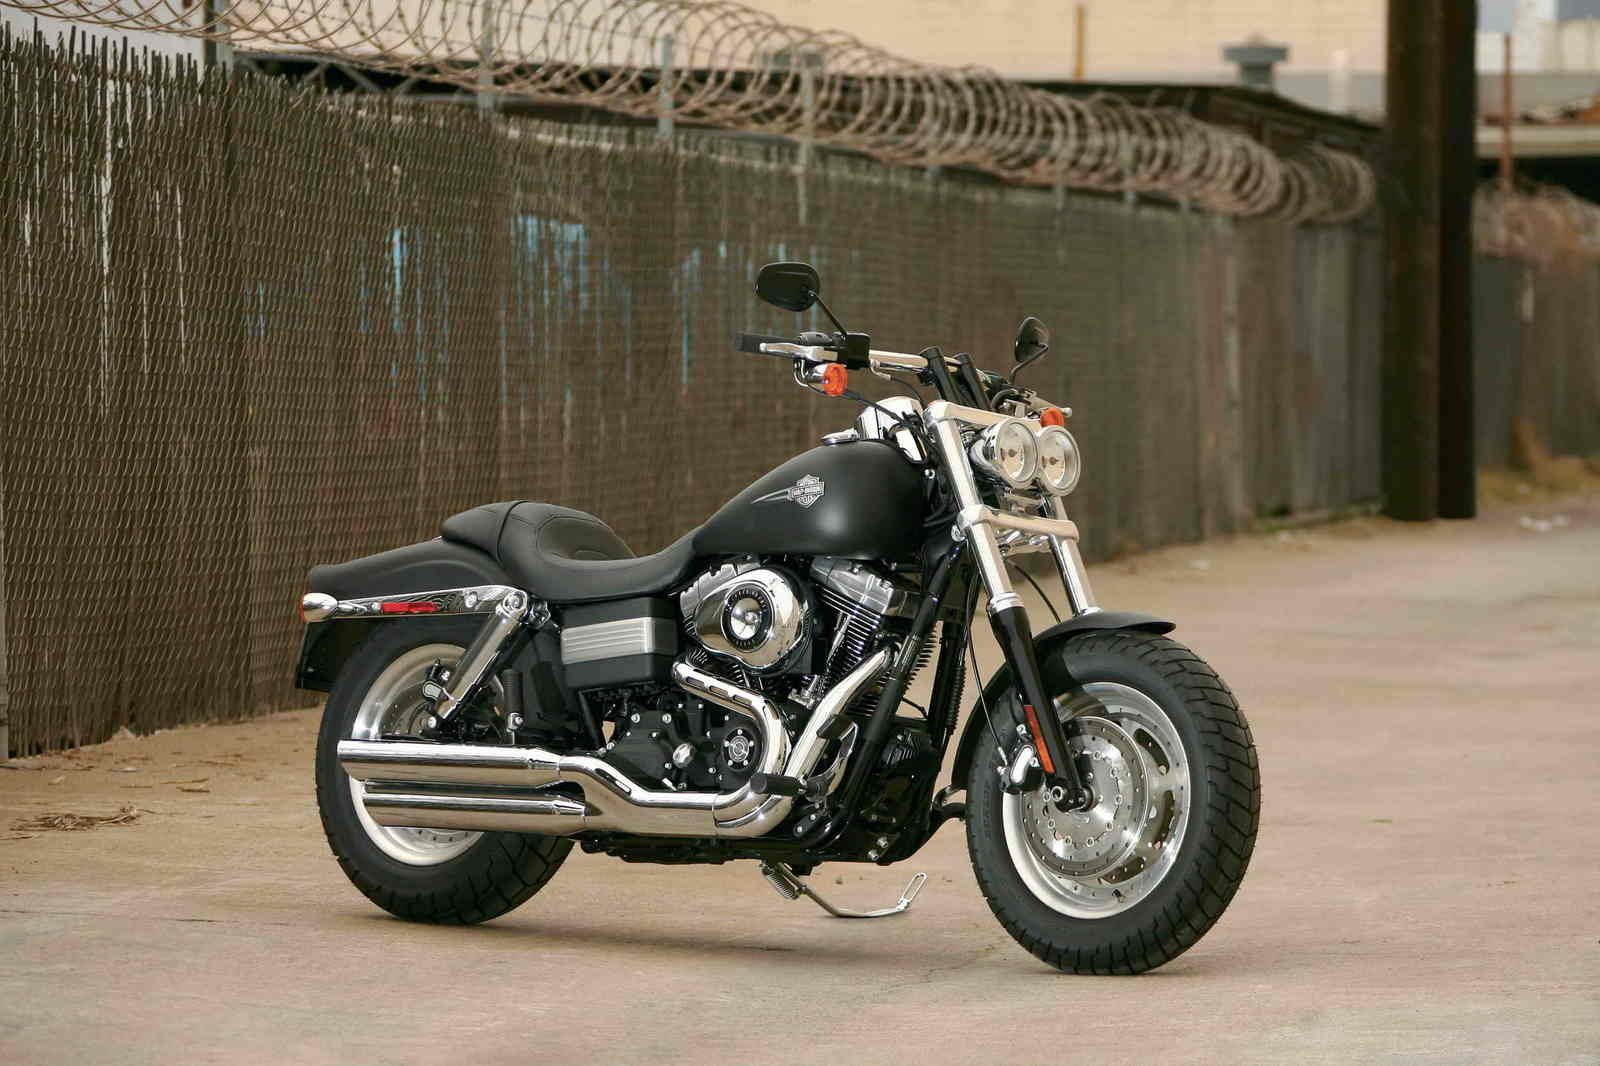 2008 harley davidson fxdf dyna fat bob picture 194528 motorcycle review top speed. Black Bedroom Furniture Sets. Home Design Ideas